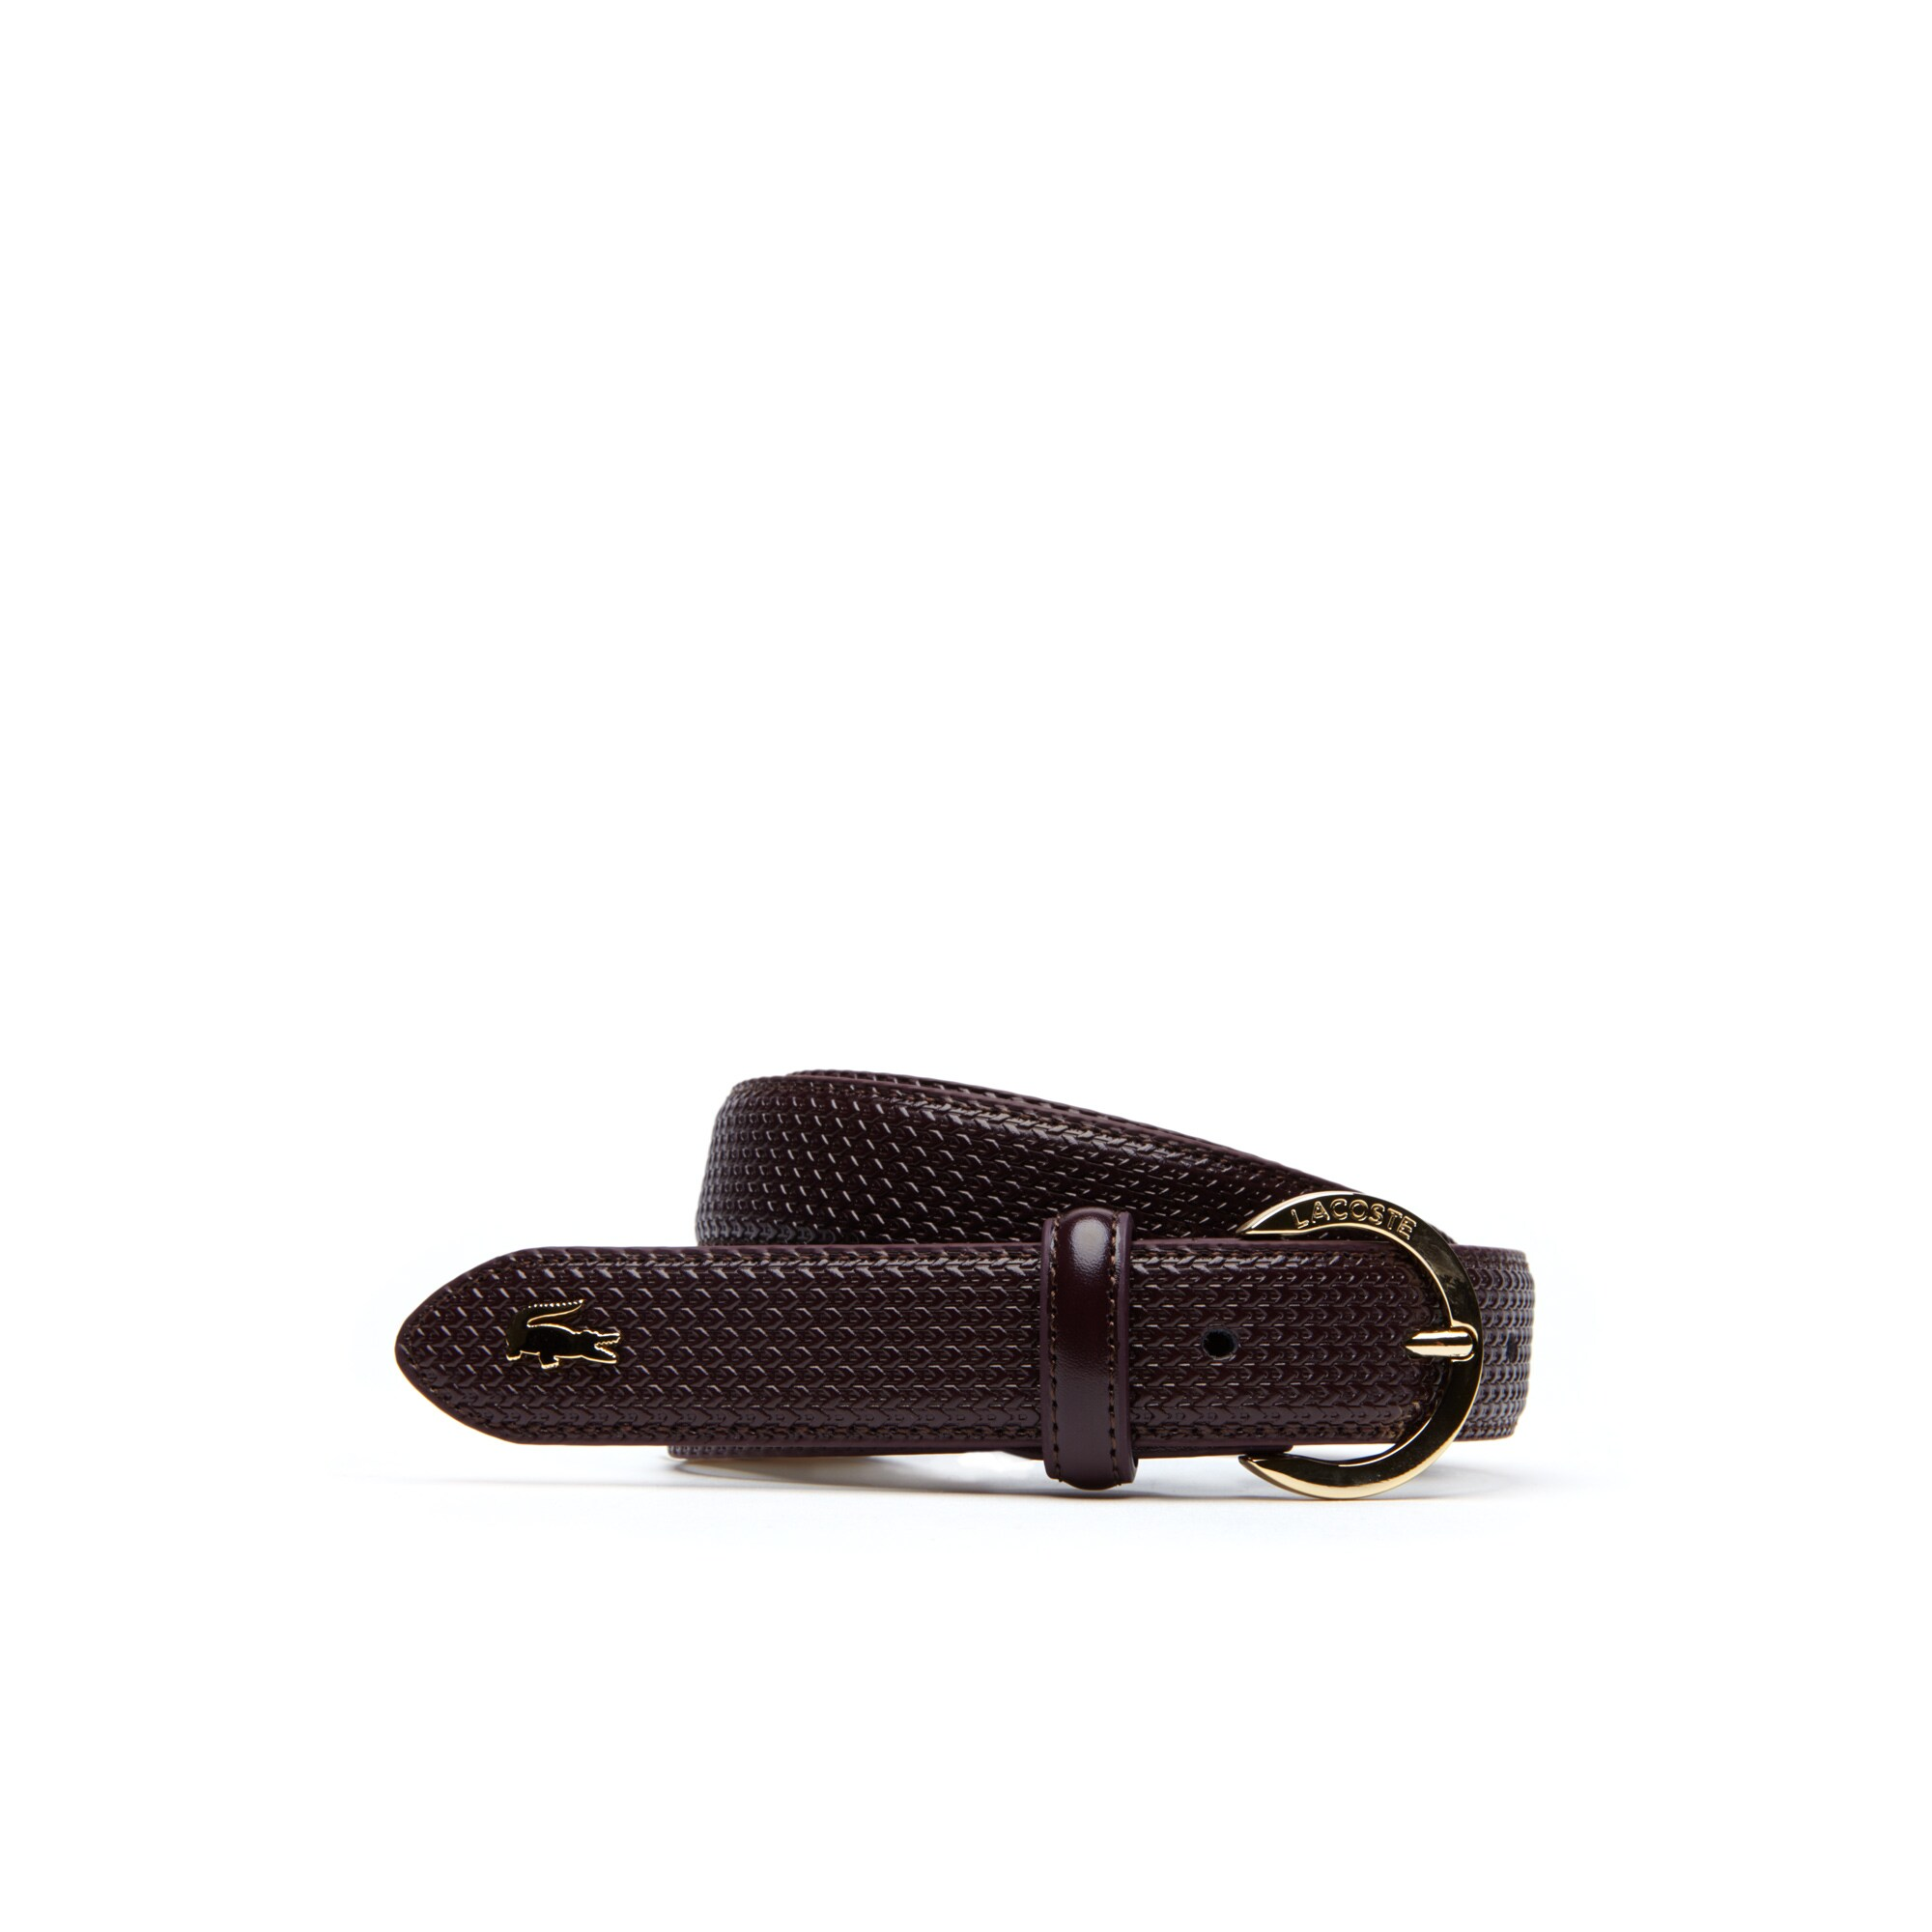 Lacoste - Women's Chantaco Lacoste Engraved Round Buckle Leather Belt - 1